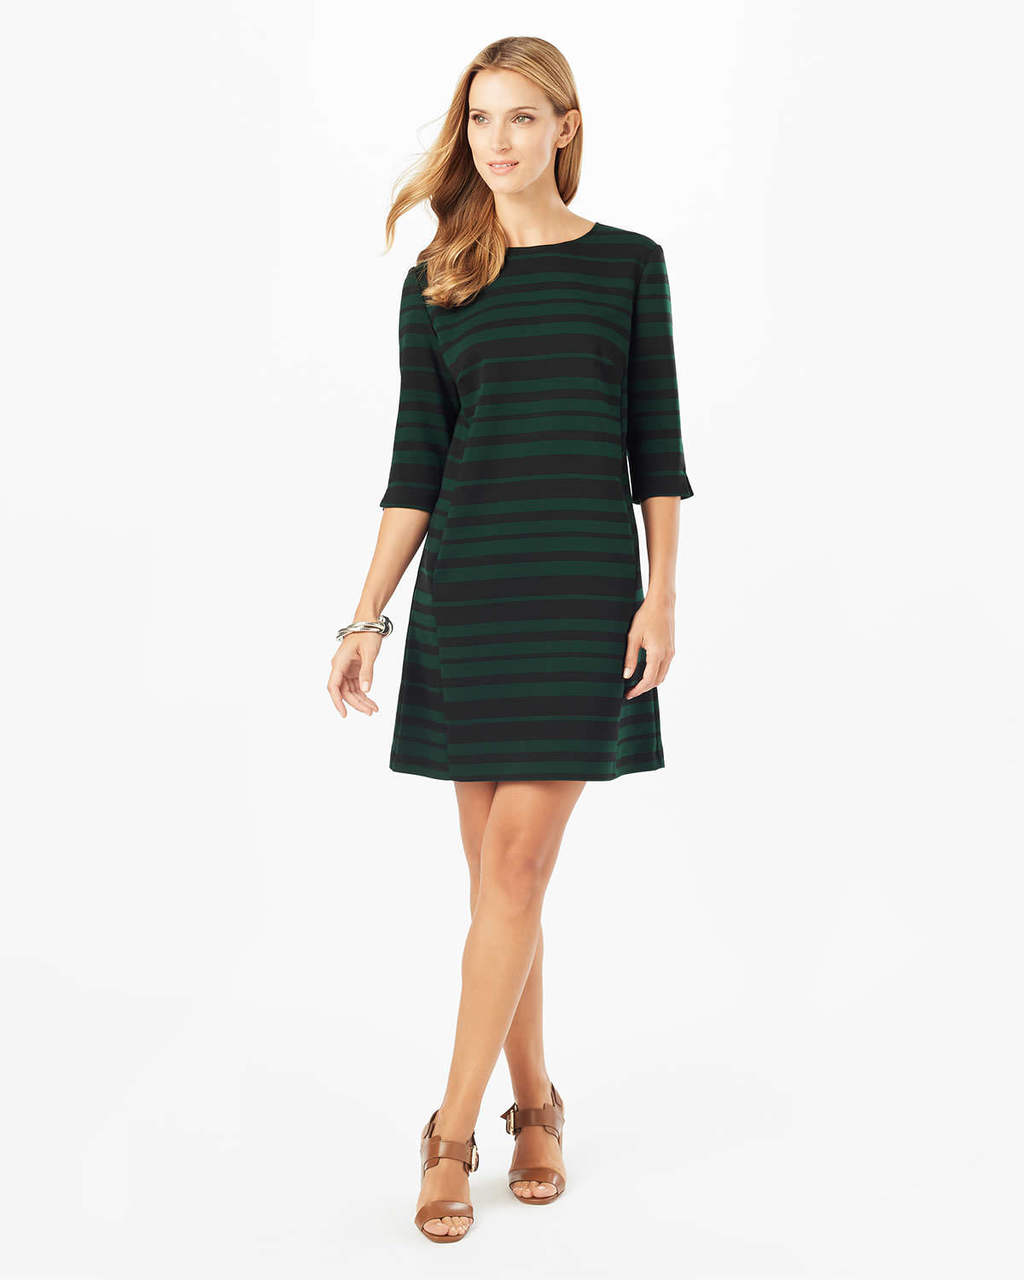 Sabrina Stripe Tunic Dress - style: tunic; pattern: horizontal stripes; secondary colour: dark green; predominant colour: black; occasions: evening; length: just above the knee; fit: body skimming; fibres: polyester/polyamide - stretch; neckline: crew; sleeve length: 3/4 length; sleeve style: standard; pattern type: fabric; texture group: jersey - stretchy/drapey; multicoloured: multicoloured; season: a/w 2016; wardrobe: event